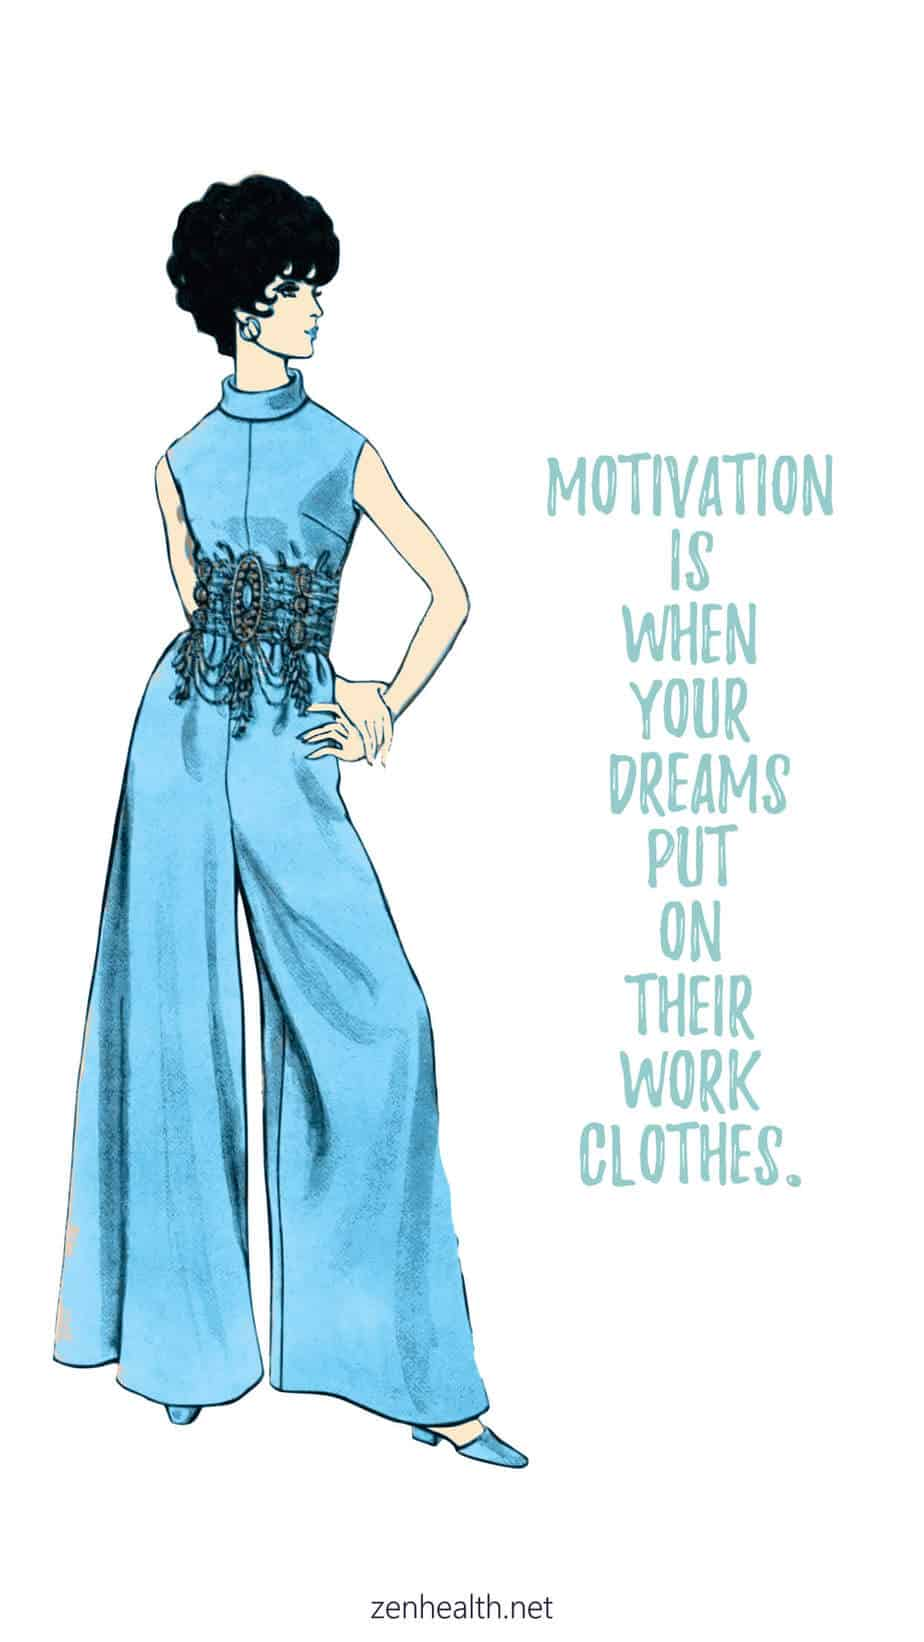 Motivation is when your dreams put on their work clothes.